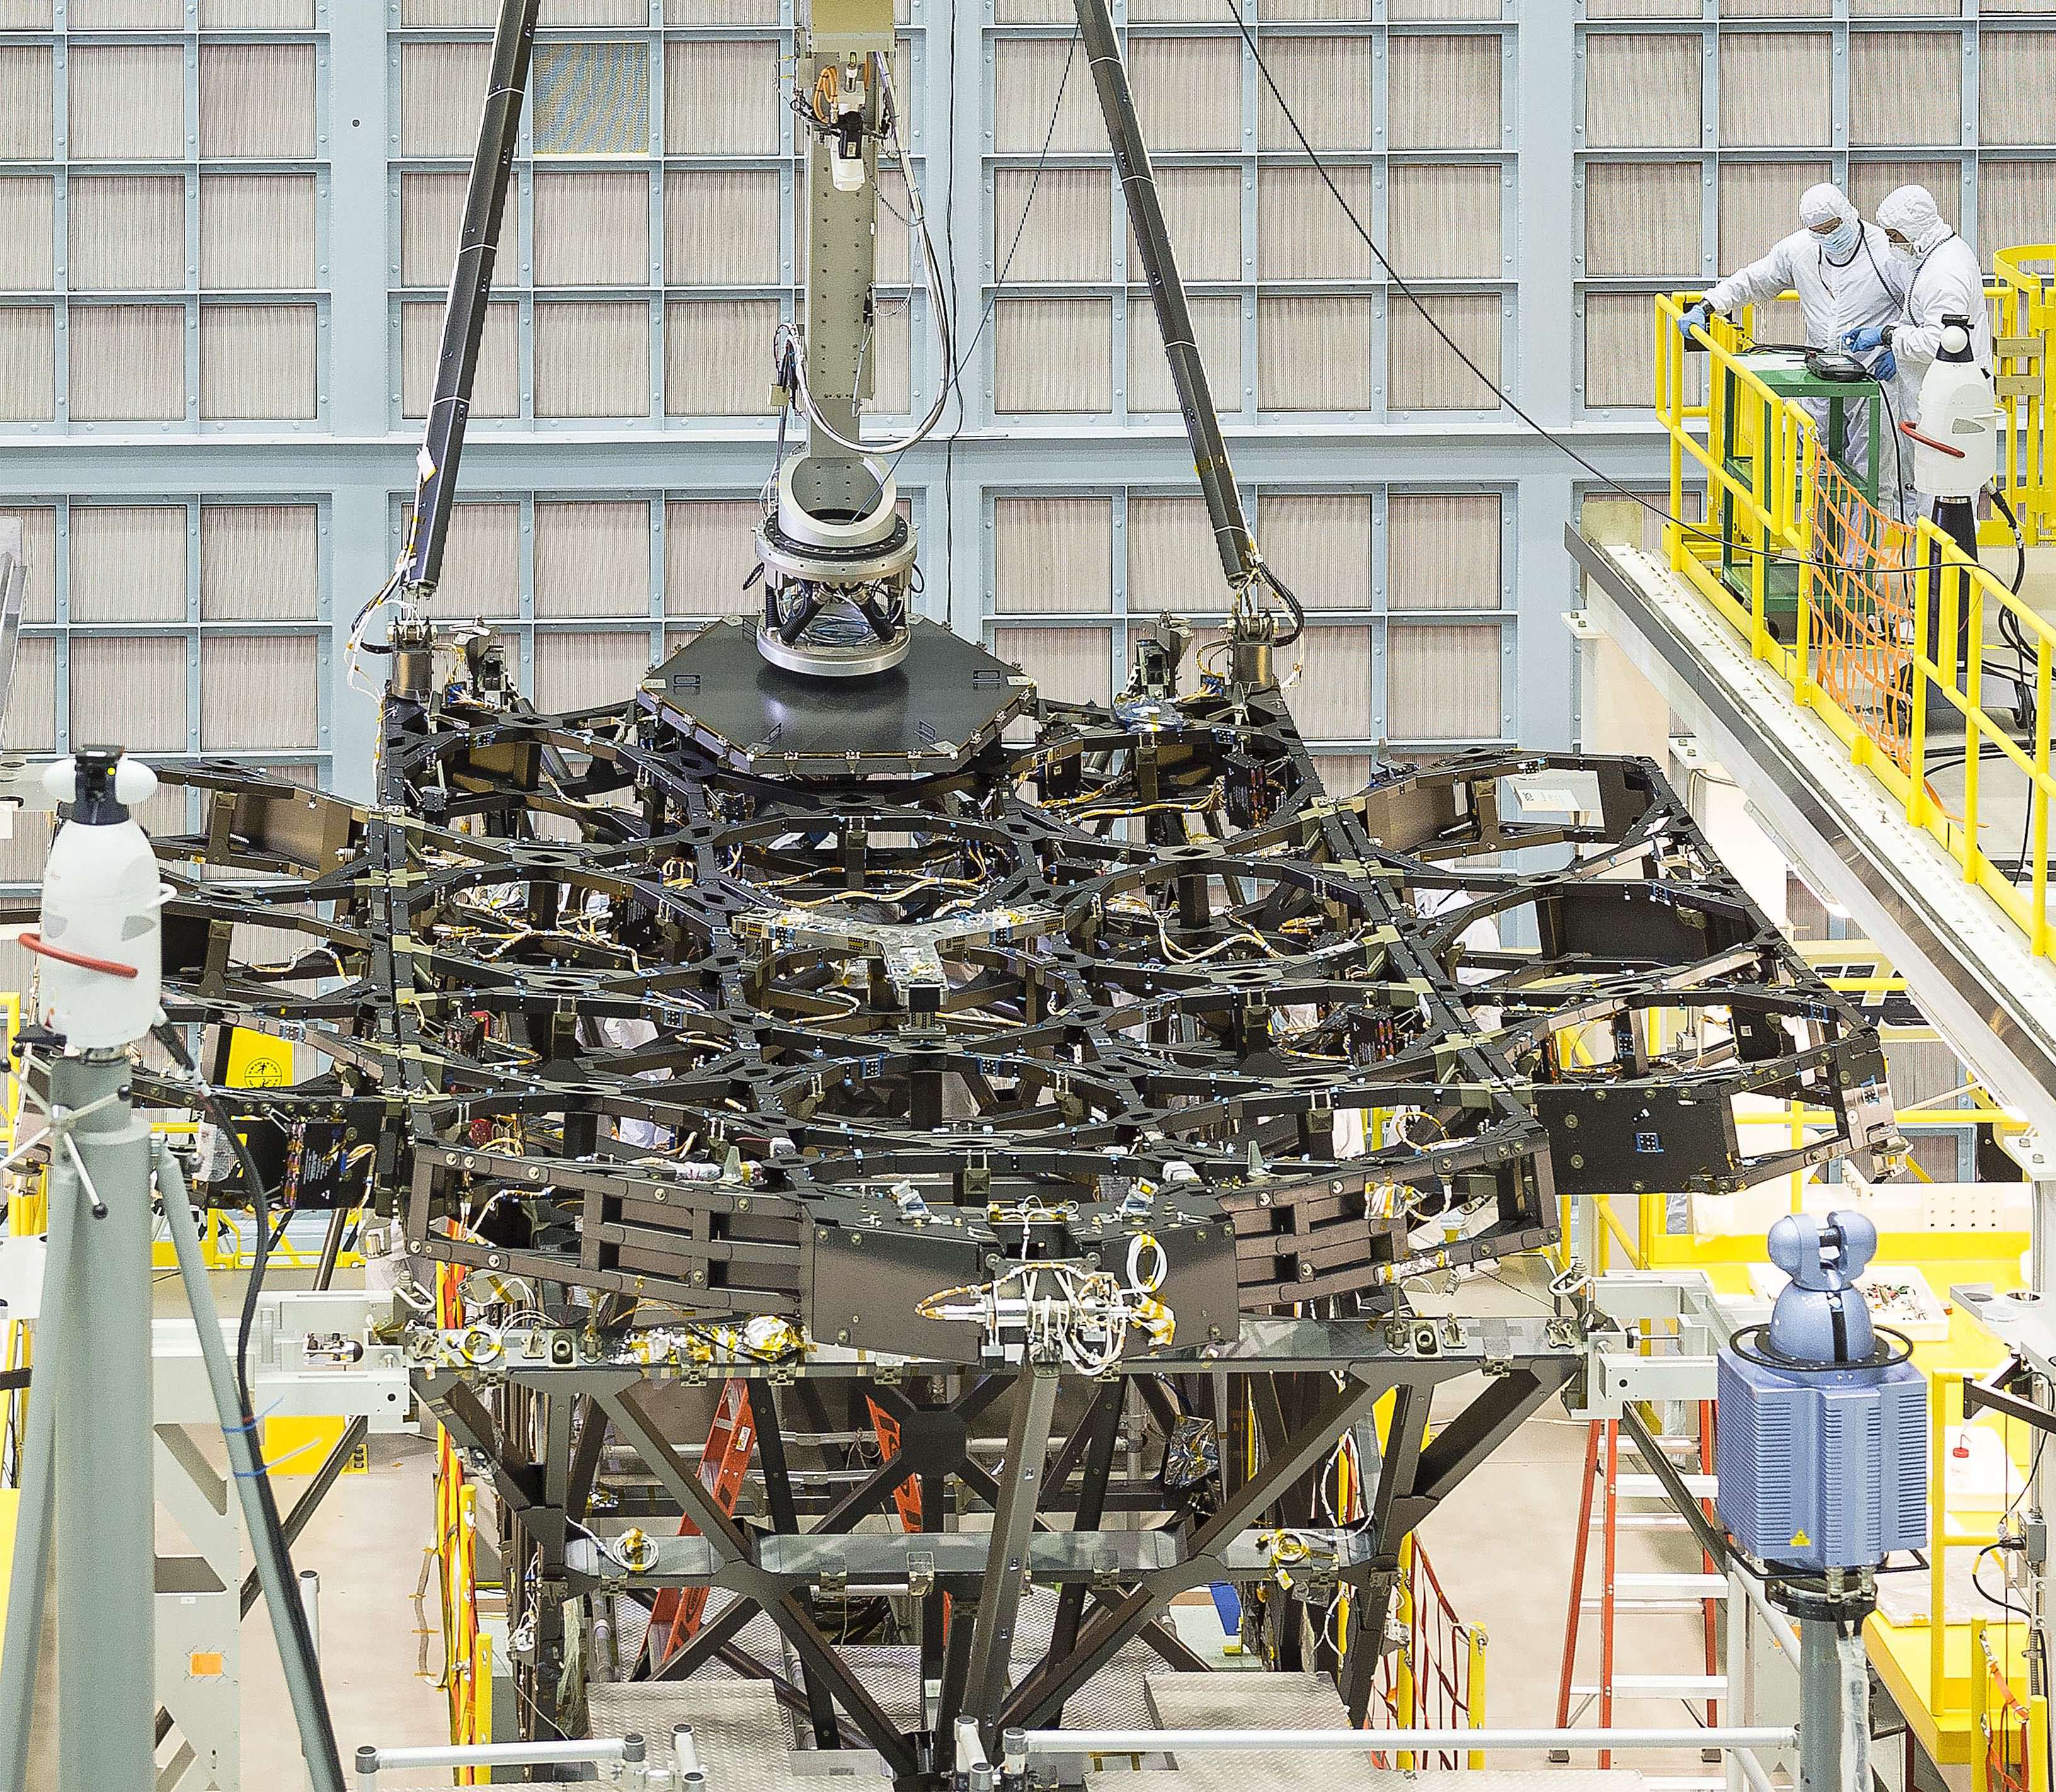 The James Webb Space Telescope team successfully installed the first flight mirror onto the telescope structure at NASA's Goddard Space Flight Center in Greenbelt, Maryland.  Credits: NASA/Chris Gunn